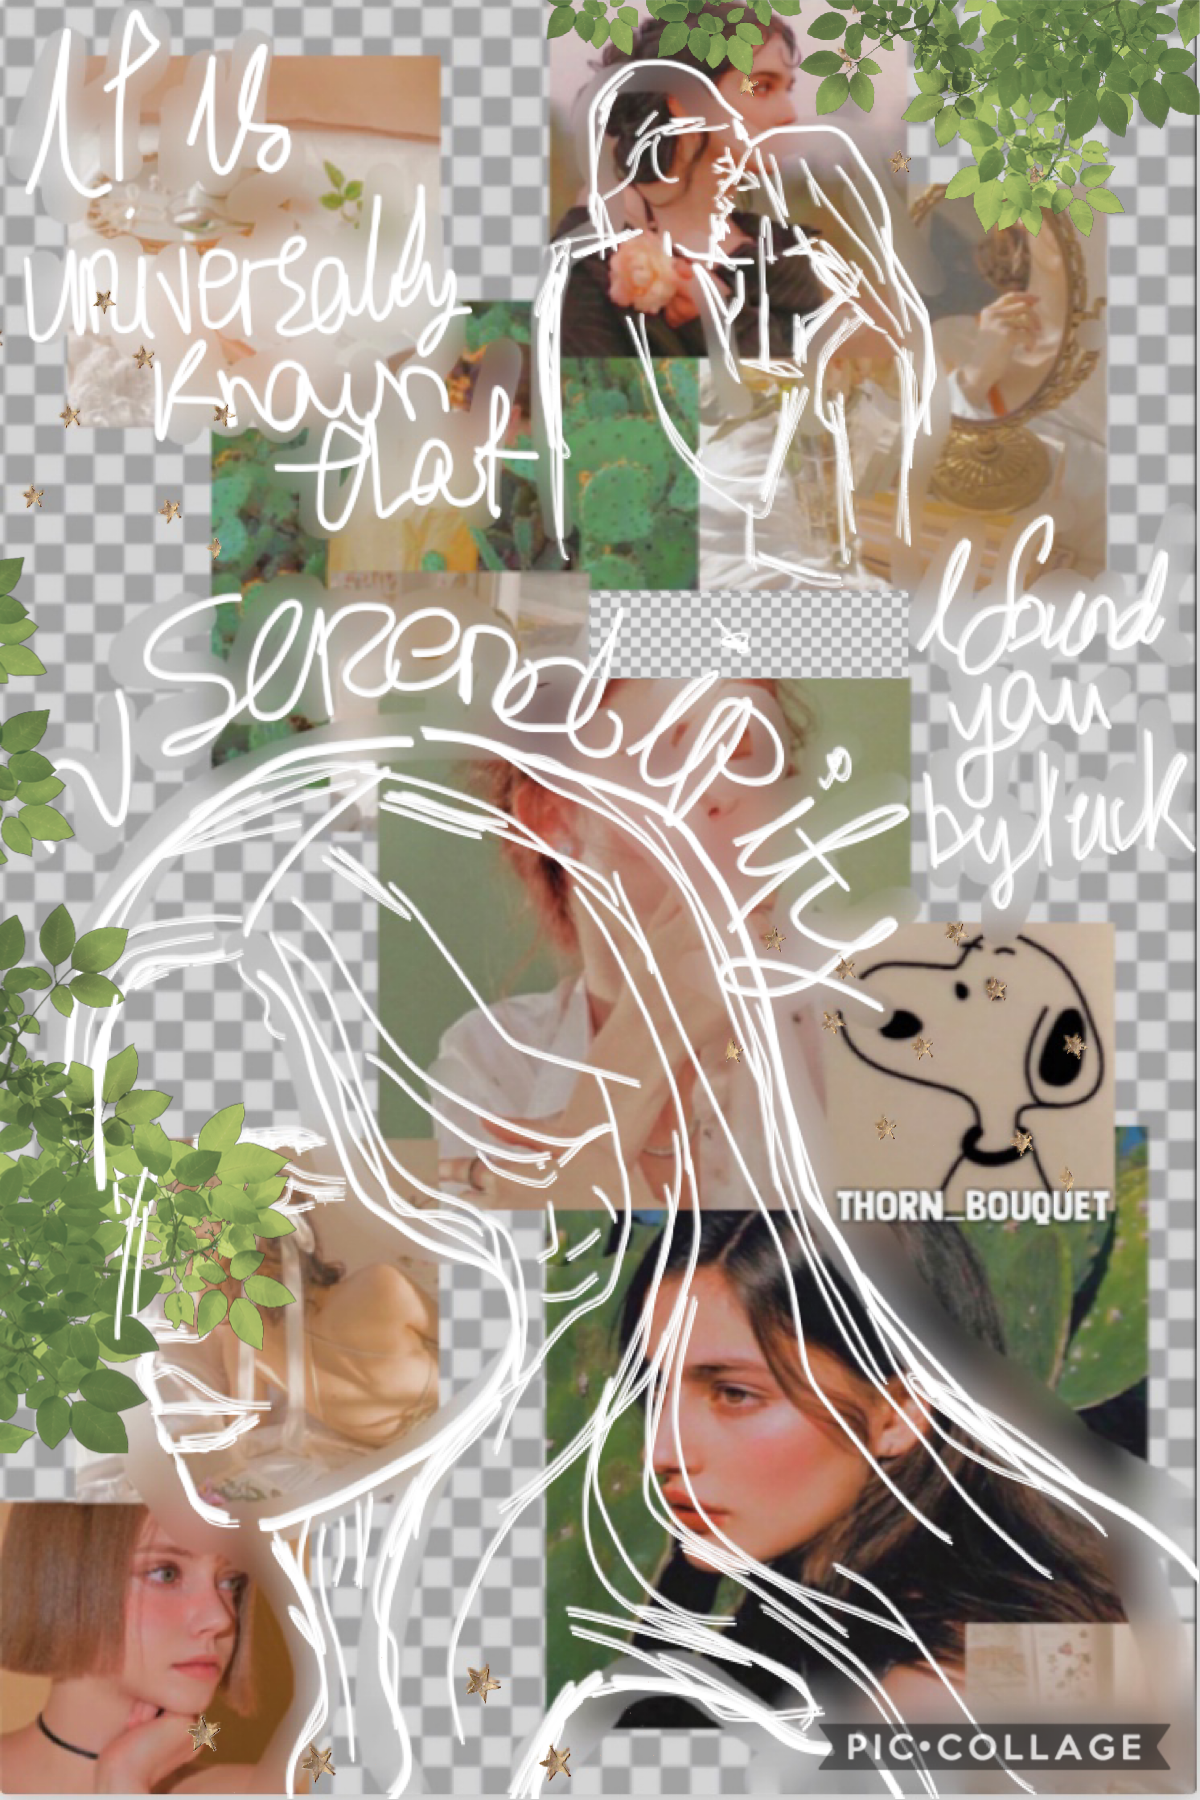 tappity tap 🤭🍃  I got this effect by accident when I was doing the layers and re-editing them 👏🏻  QOTD: favourite word so far? lol I change frequently and rn my best would be 'vulnerable' 🥺 oh and the song vulnerable by Selena is omggg so good 🥰